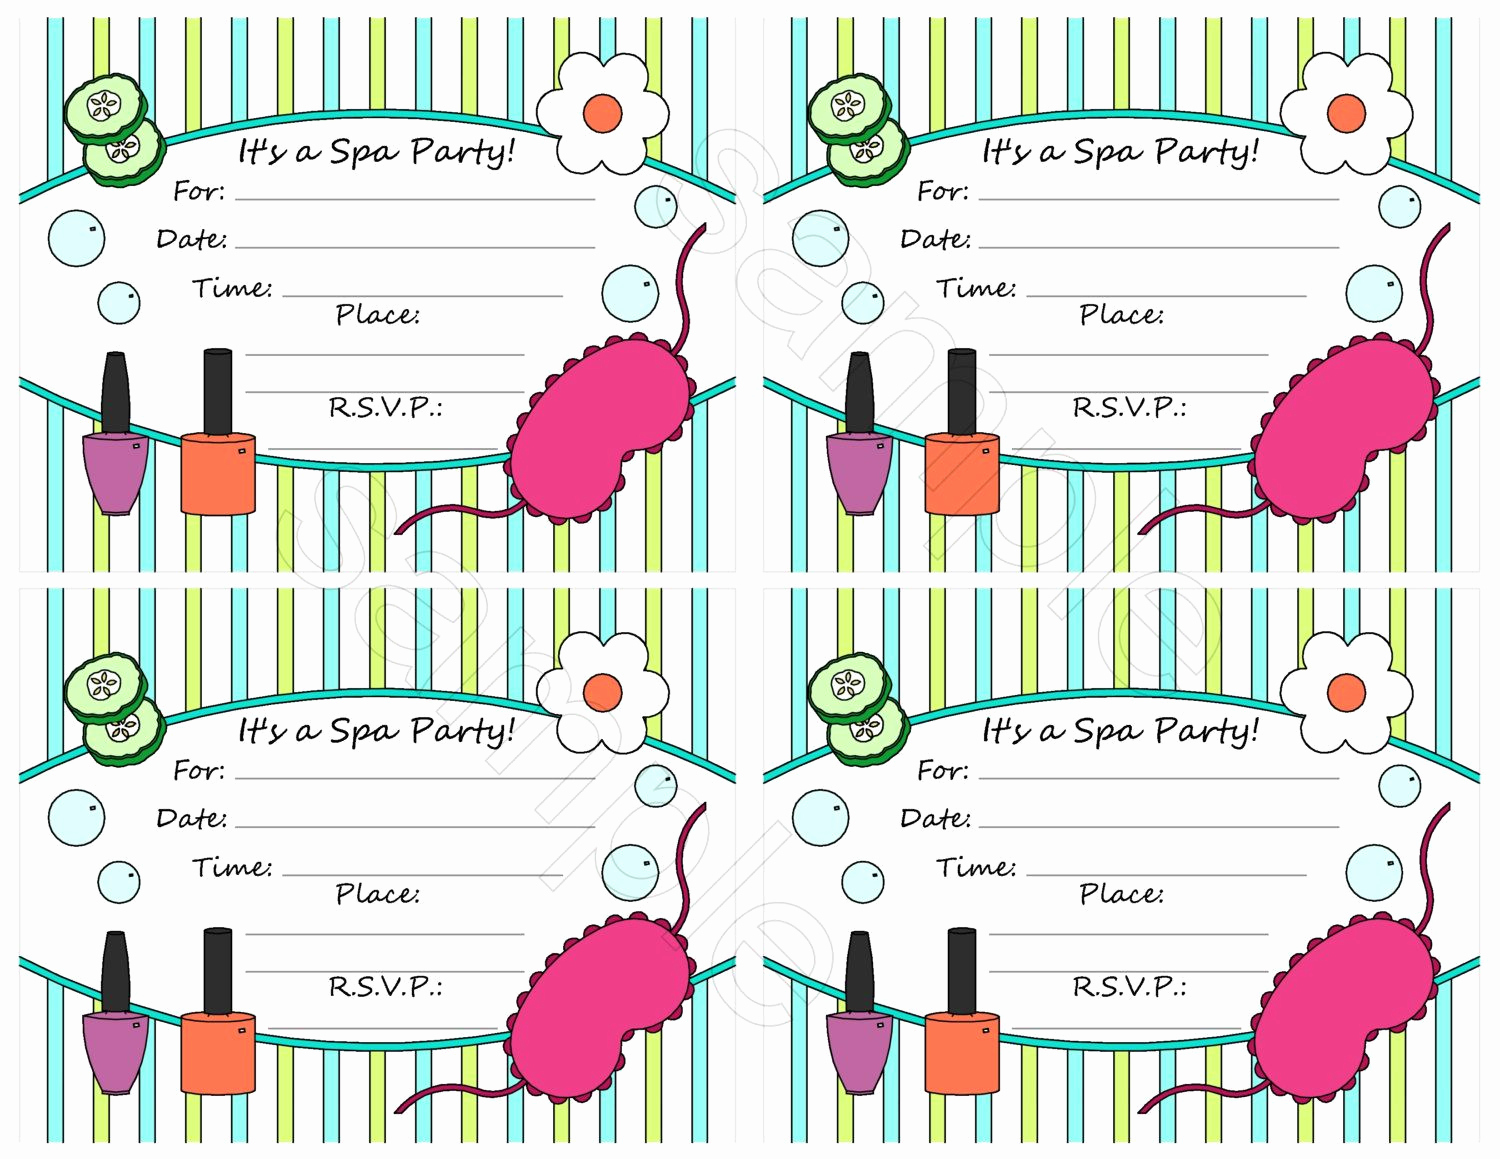 Spa Party Invitation Template Free New Free Spa Party Invitation Template